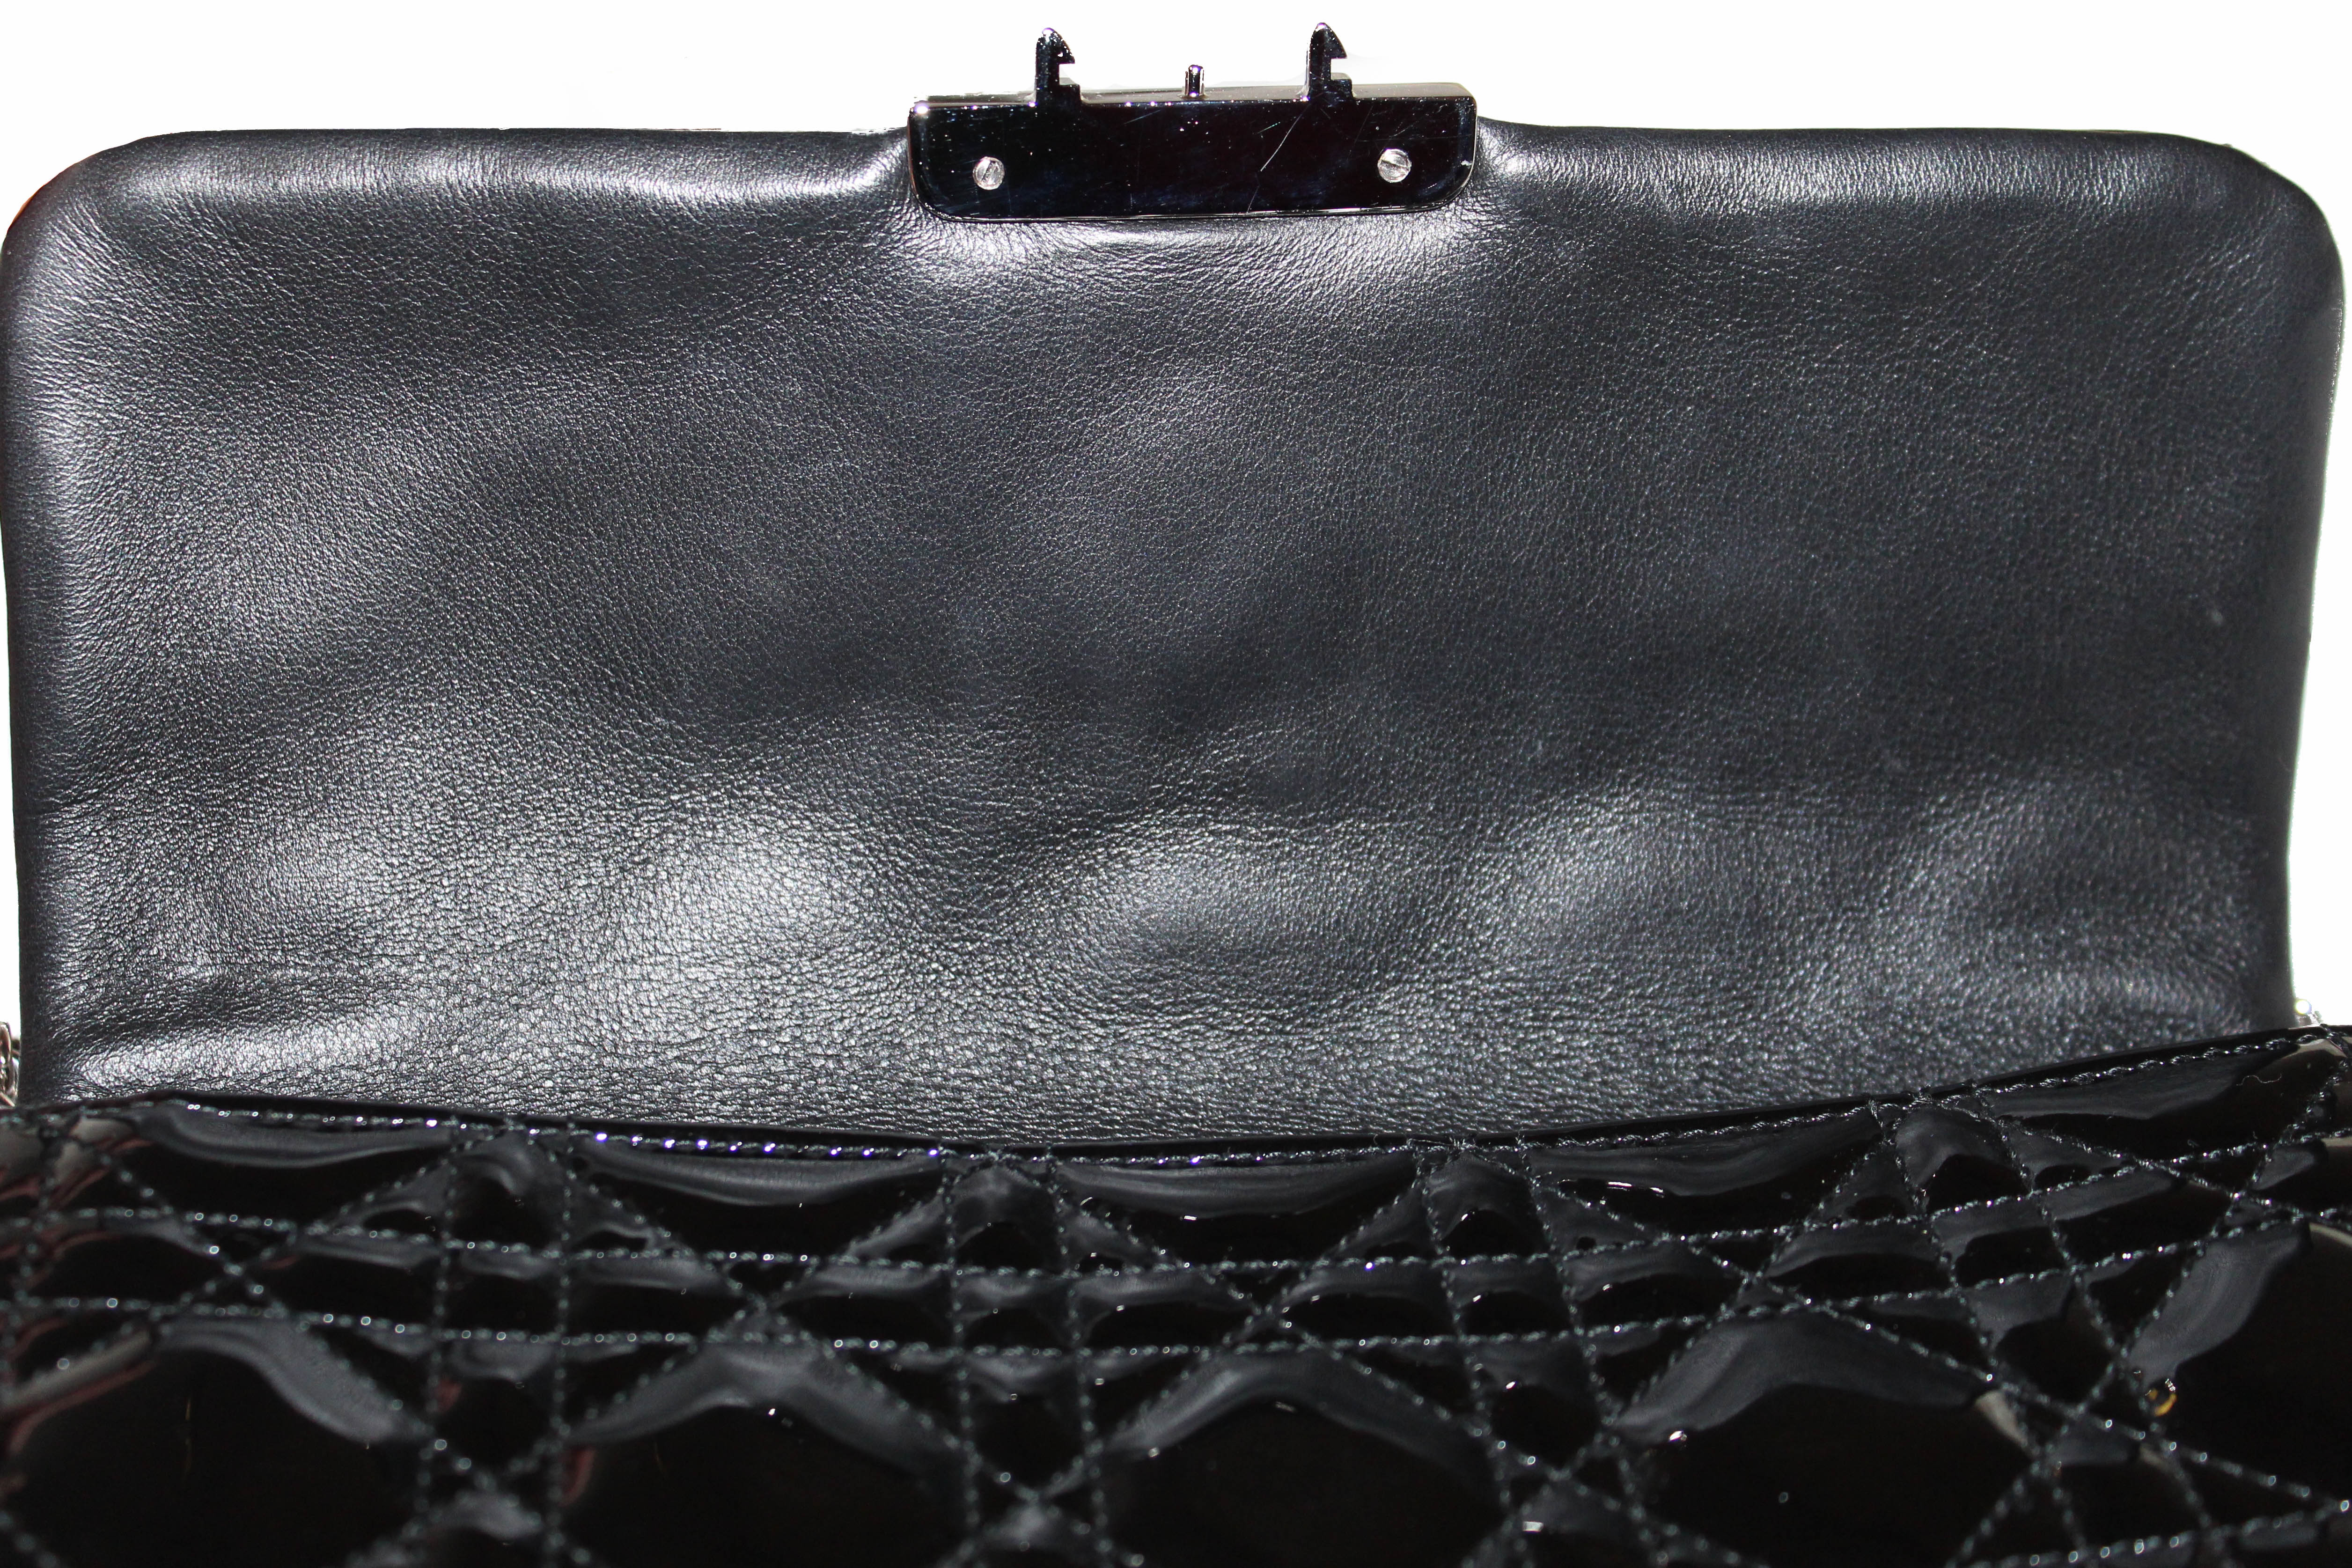 Authentic Christian Dior Black Cannage Patent Leather Miss Dior Promenade Pouch/Wallet On Chain